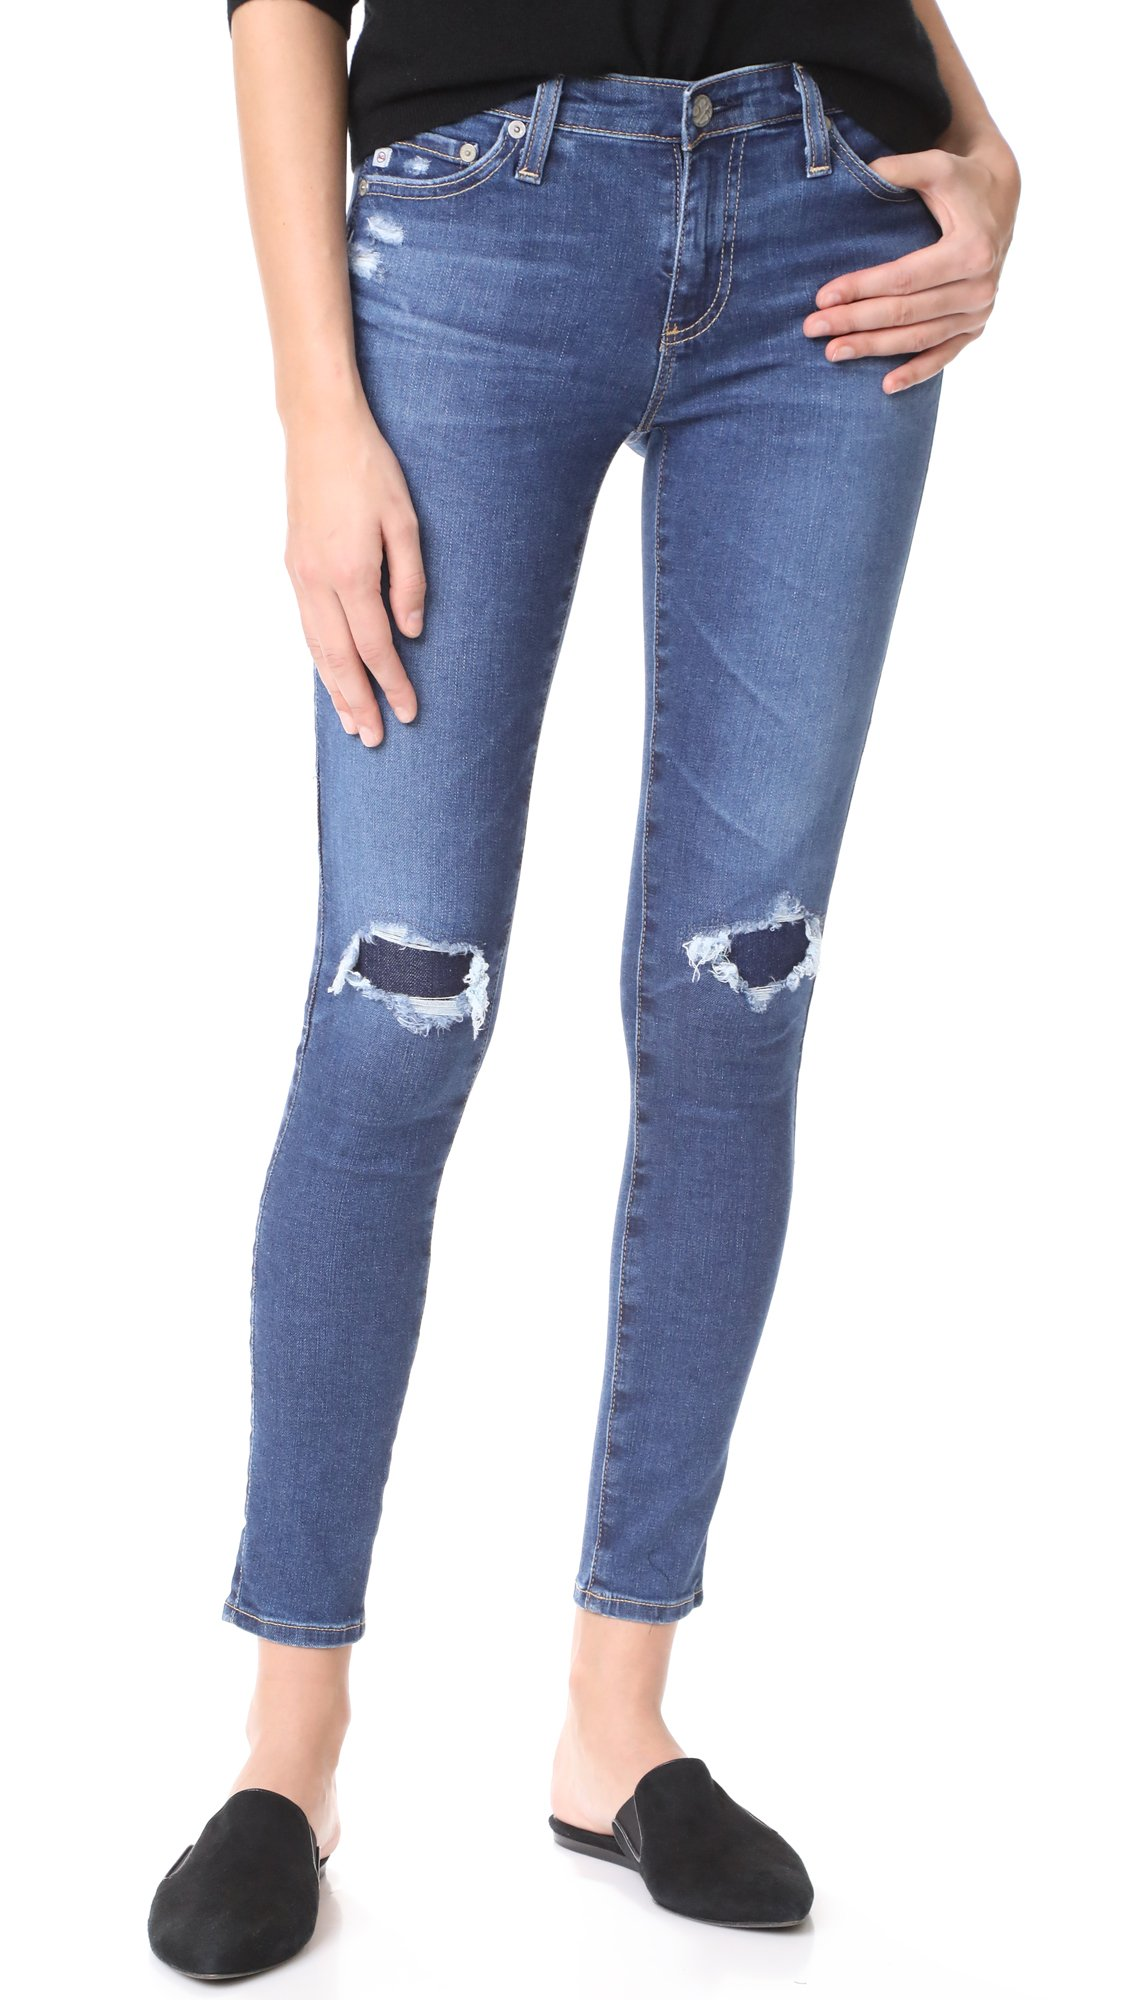 AG Adriano Goldschmied Women's The Legging Ankle Mended Jean, 13 Years-Dawn Mended, 31